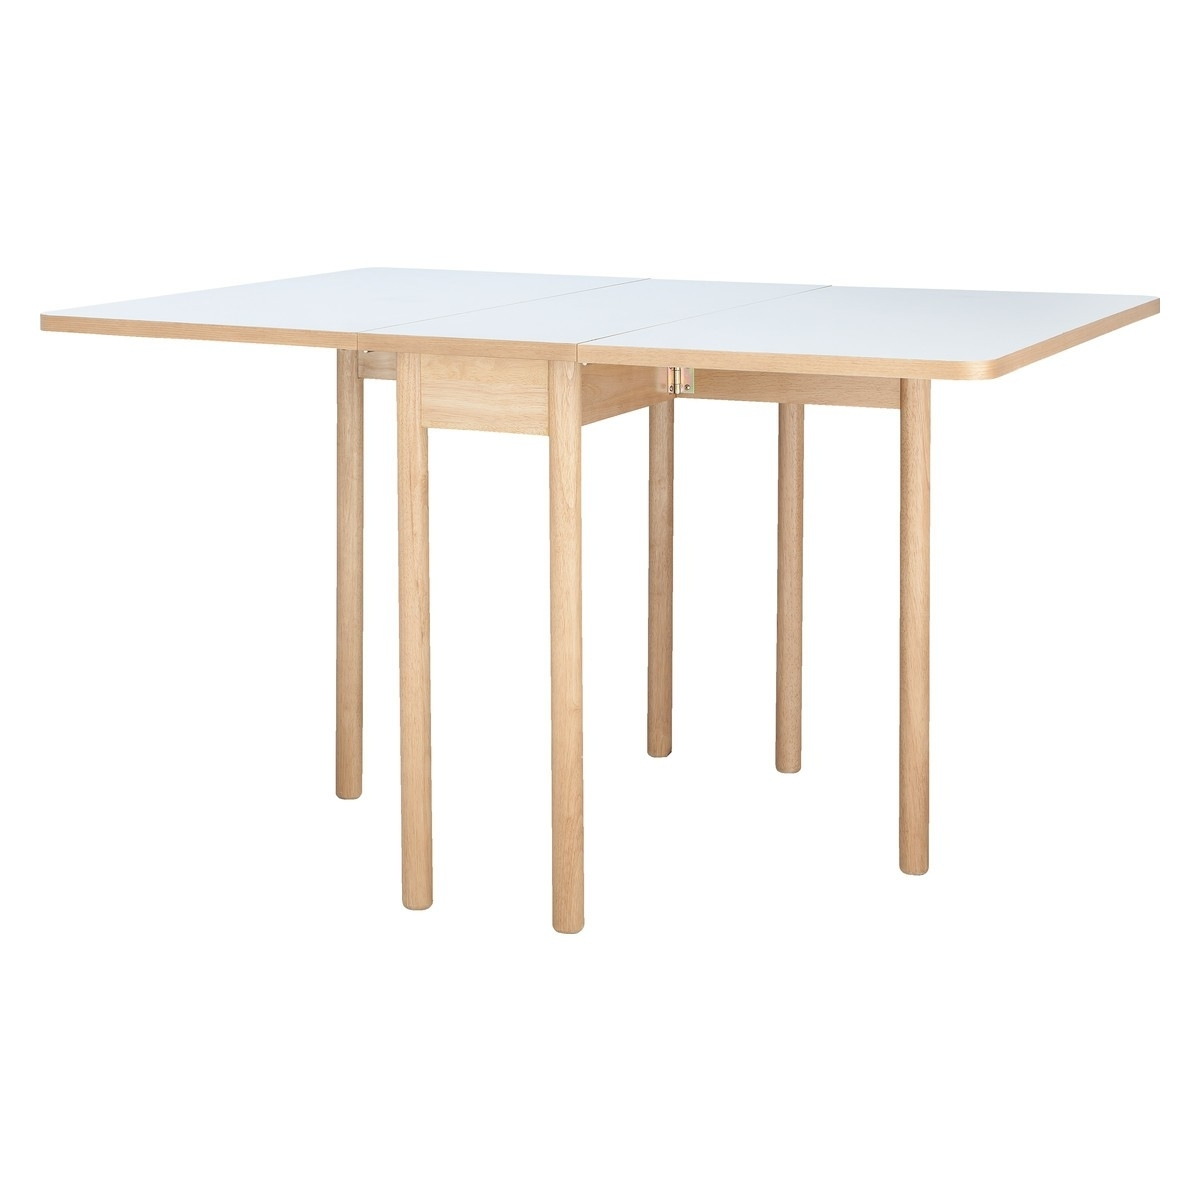 Newest Foldaway Dining Tables Regarding Suki 2 6 Seat White Folding Dining Table (View 19 of 25)